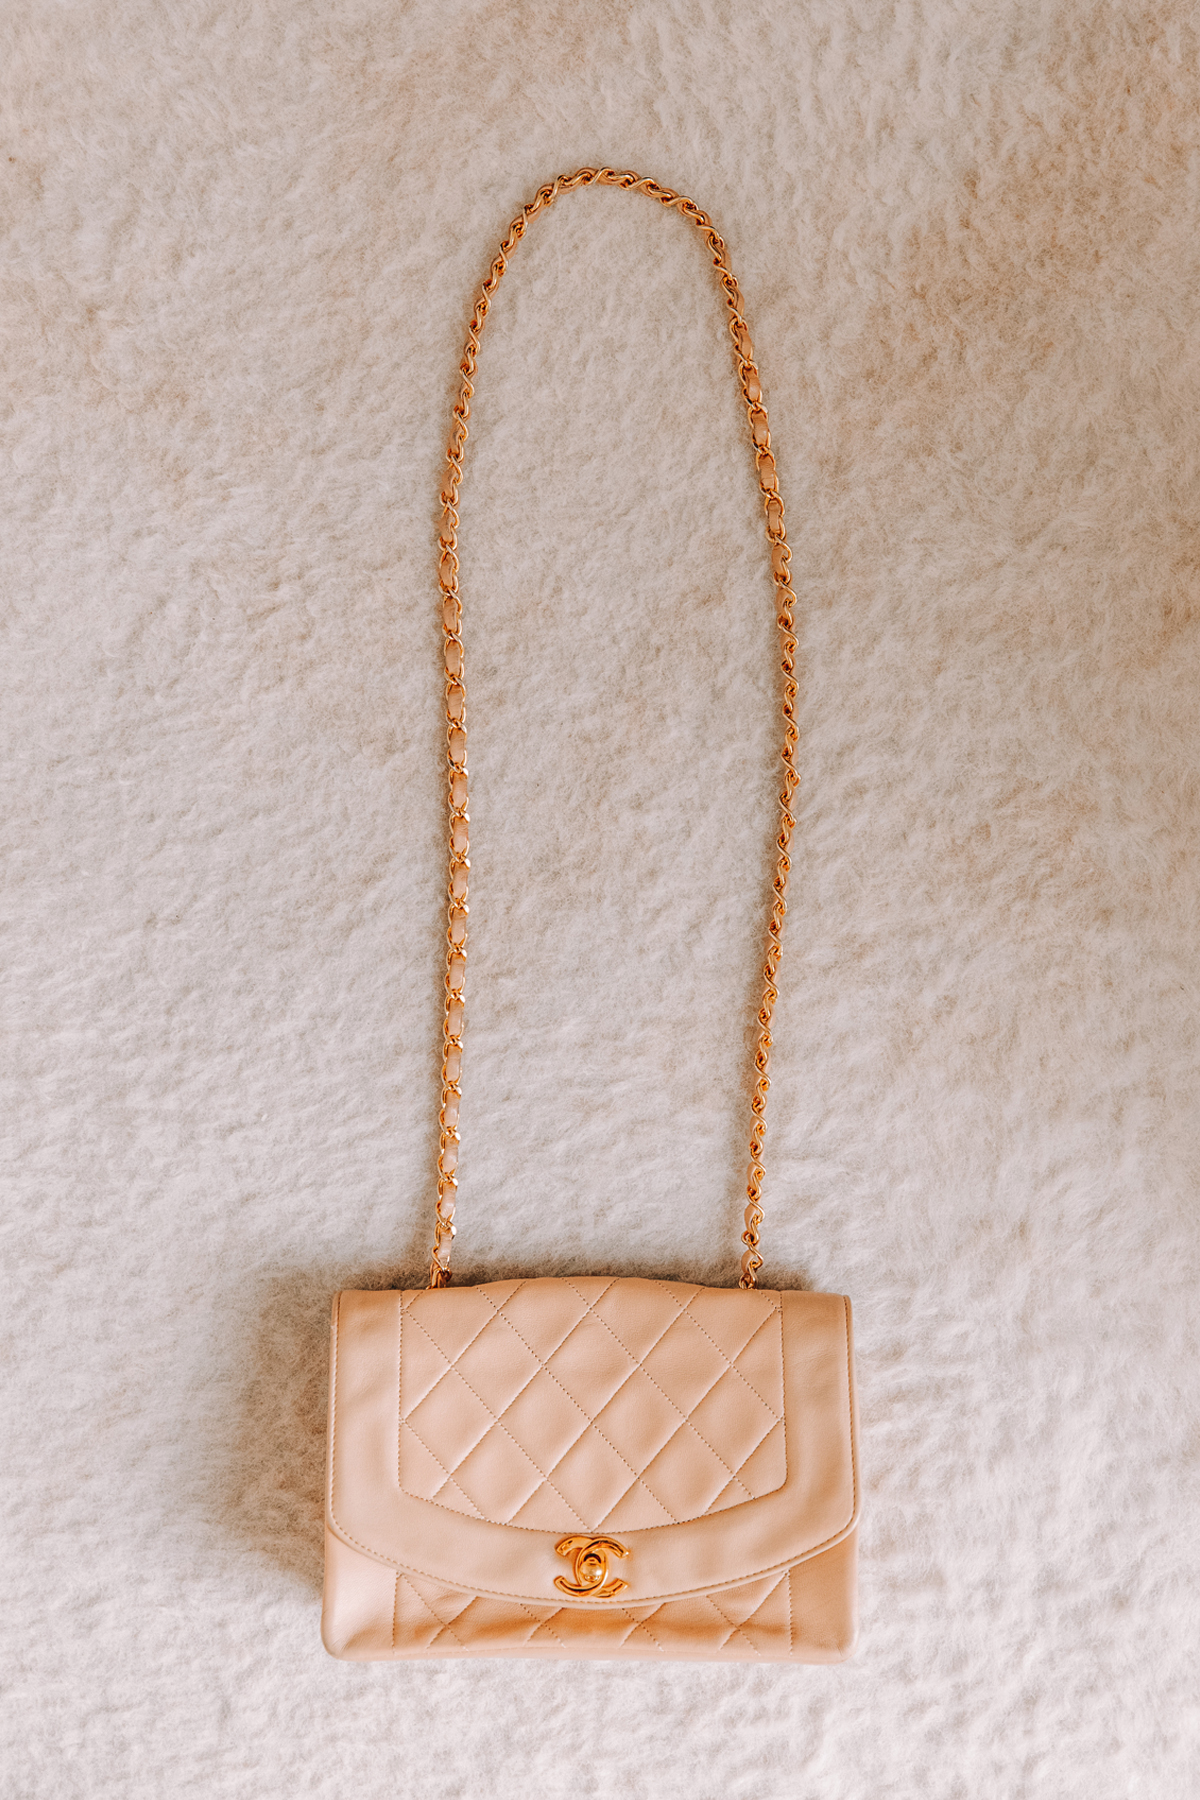 Fashion Jackson Chanel Lambskin Quilted Small Single Flap Beige